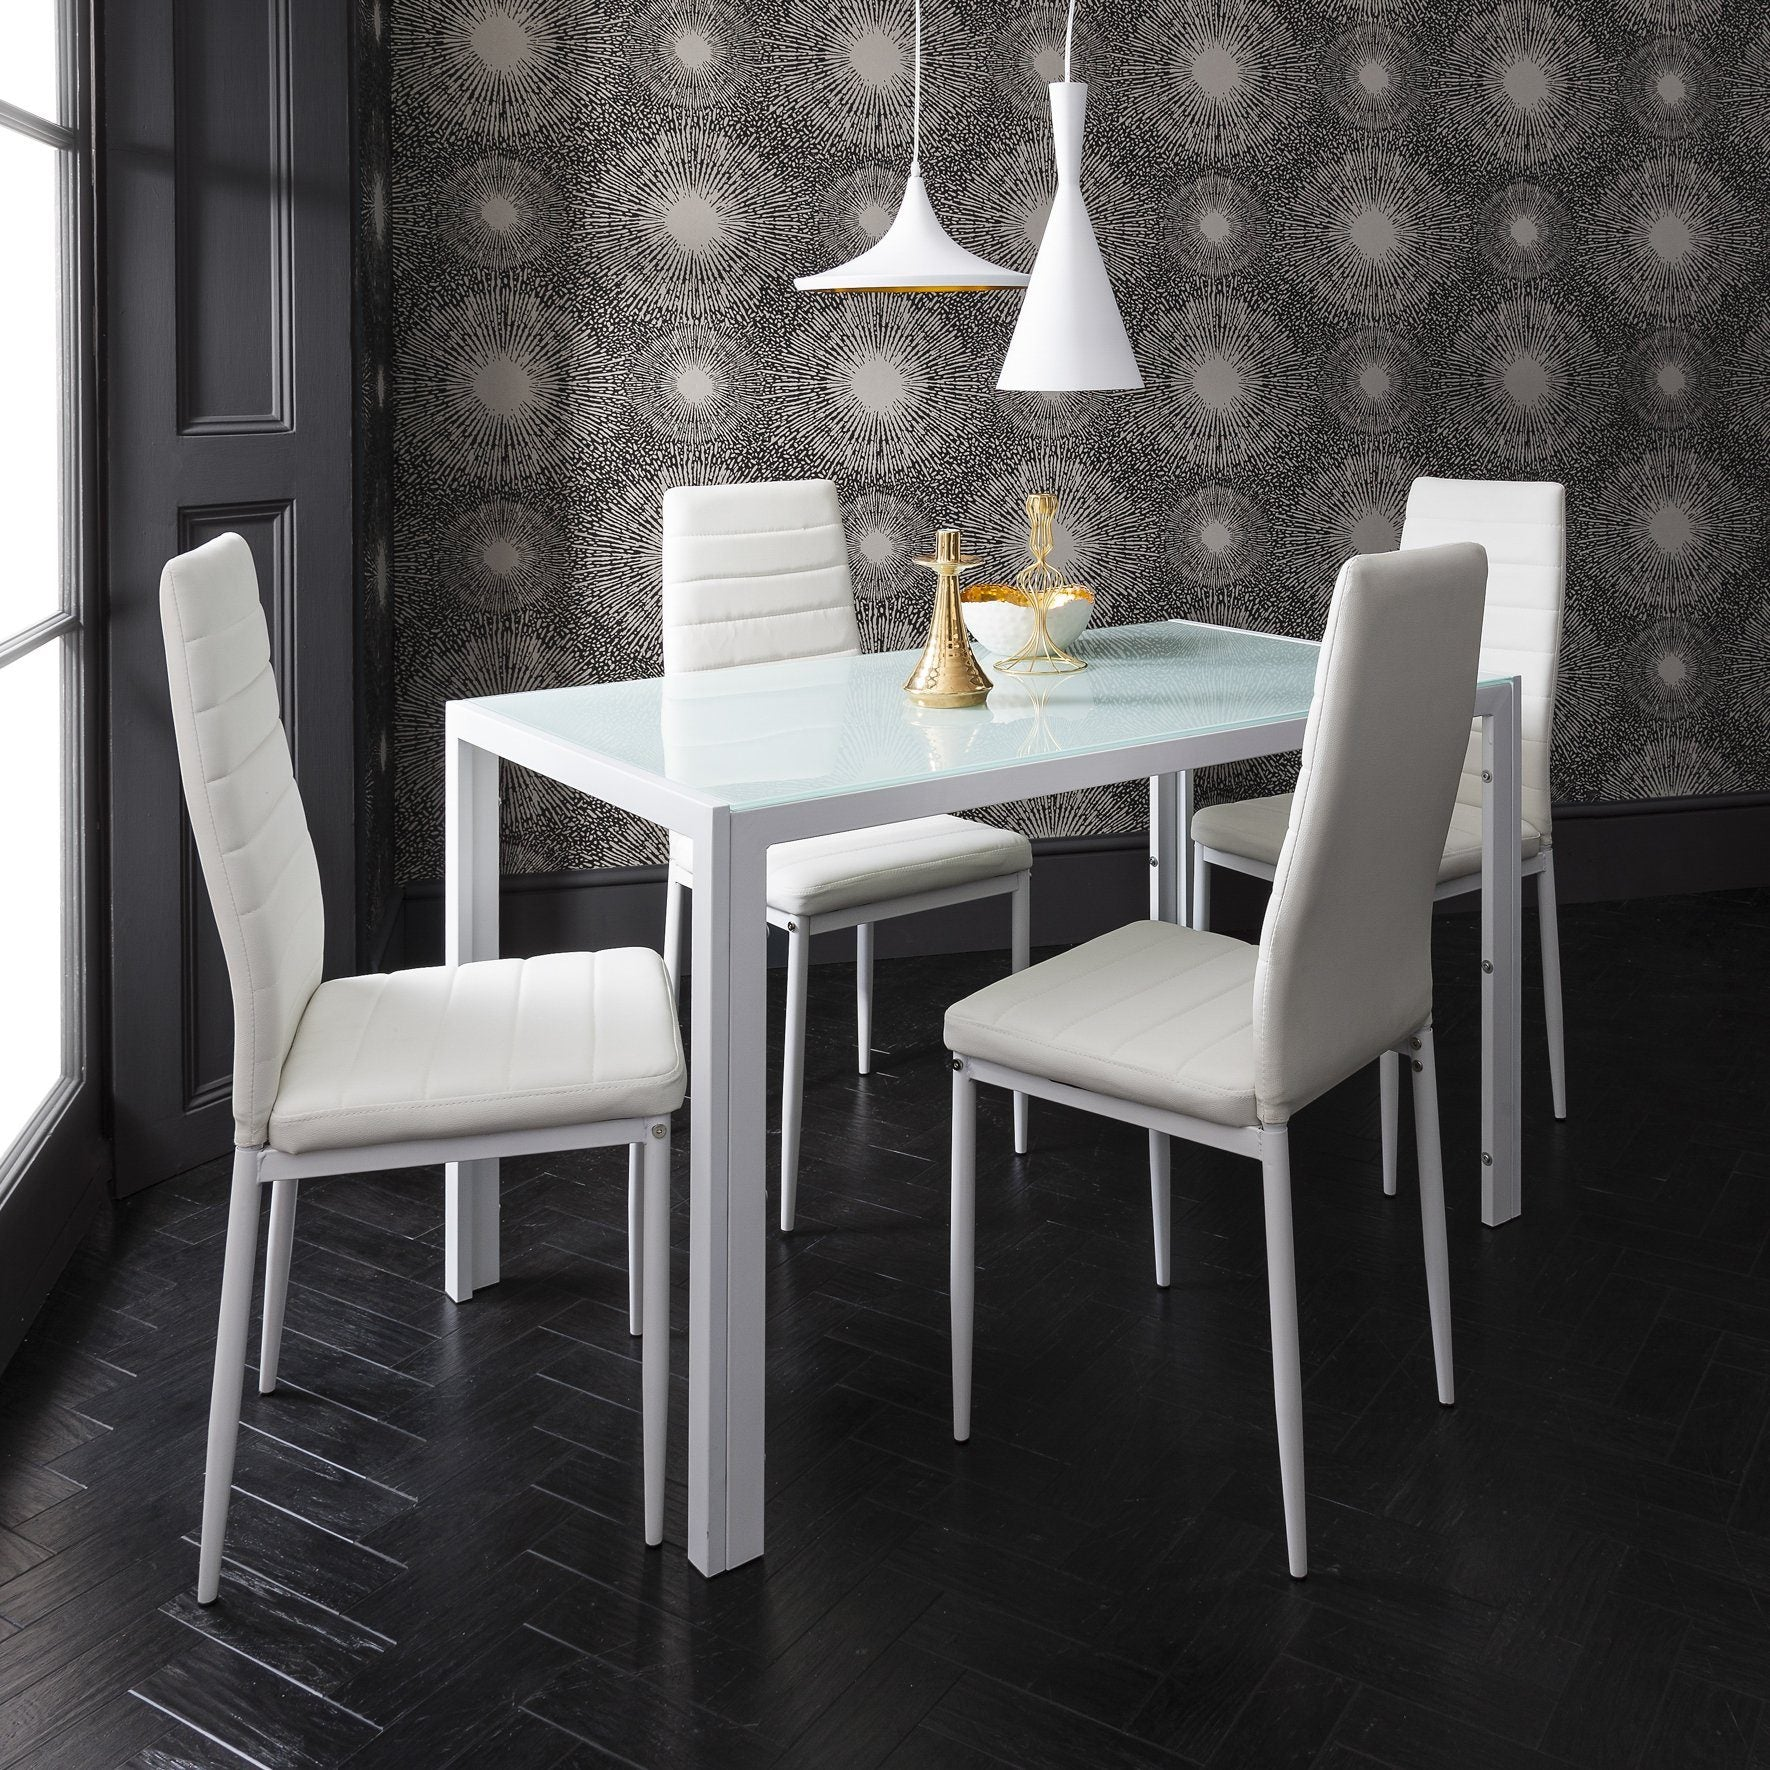 White Dining Table And Chairs 4 Seater Set Delivery On Or Before 1 Laura James